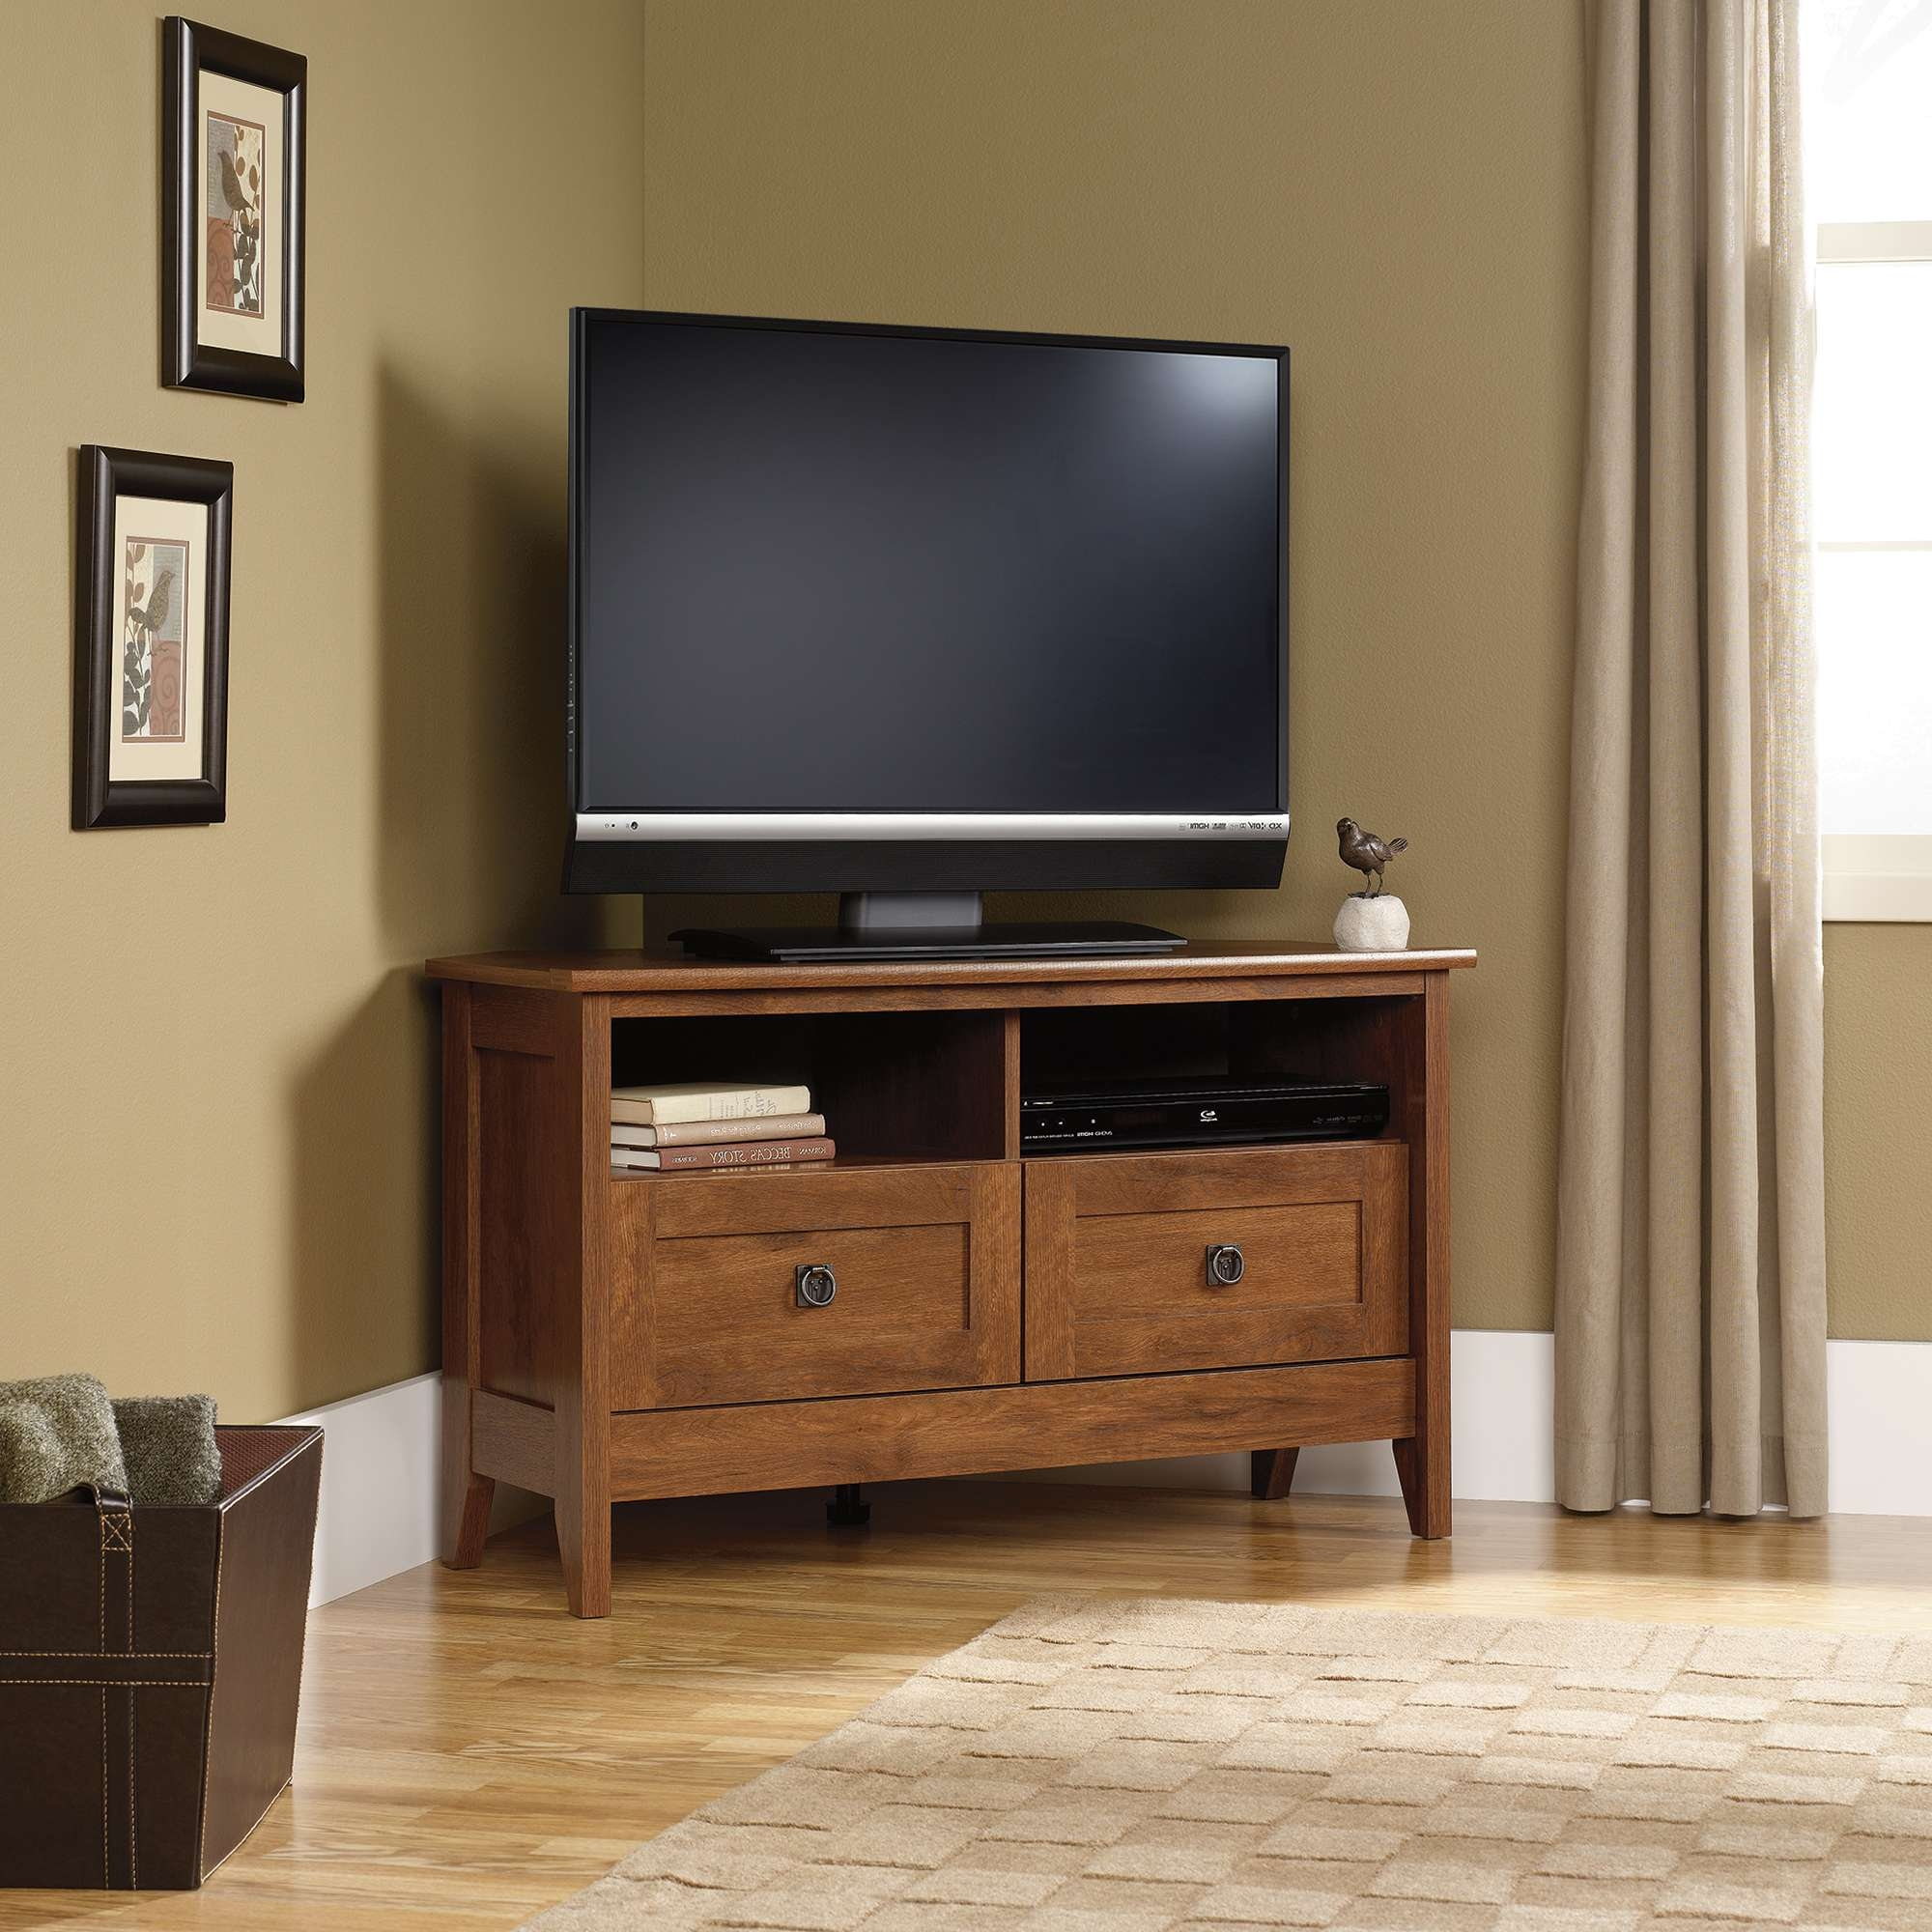 Sauder Select | Corner Tv Stand | 410627 | Sauder In Corner Tv Stands For 50 Inch Tv (View 13 of 20)